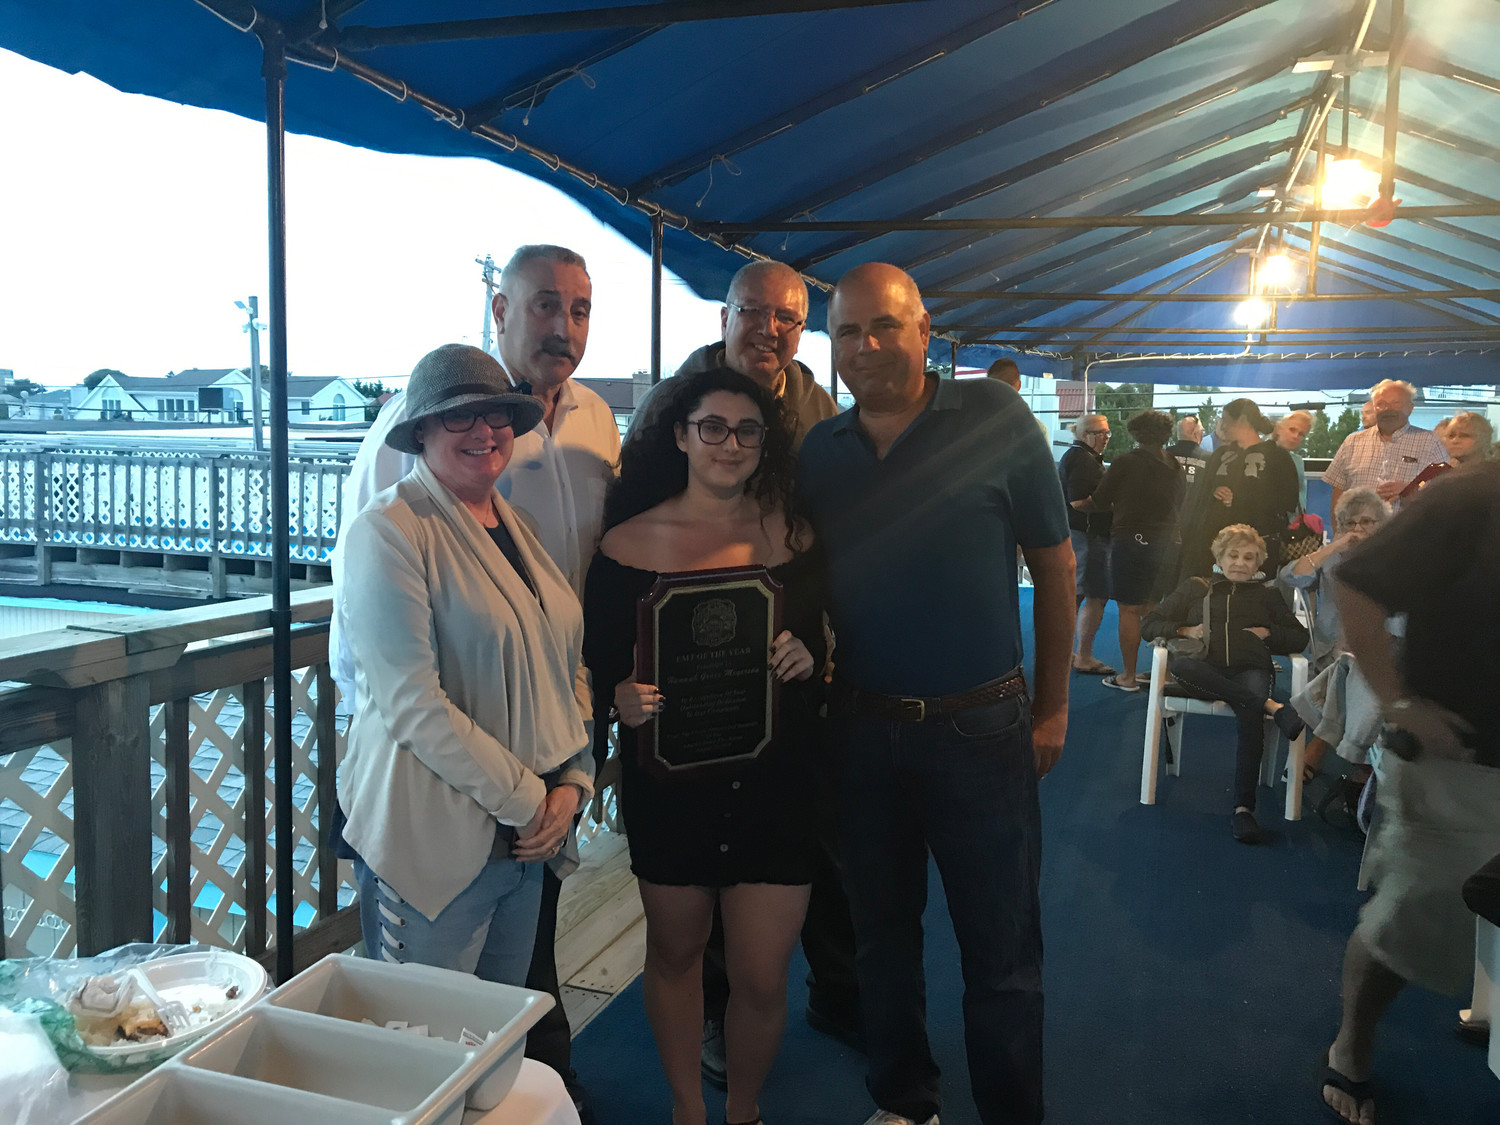 Atlantic Beach Rescue's Chief Robert Erdman EMT of the Year Award was presented to Hannah Grace Meyerson. From left Betsy Meyerson, Assistant Chief Jonathan Kohan, Meyerson, Chief Avi Golan and Village of Atlantic Beach Judge Michael Meyerson.